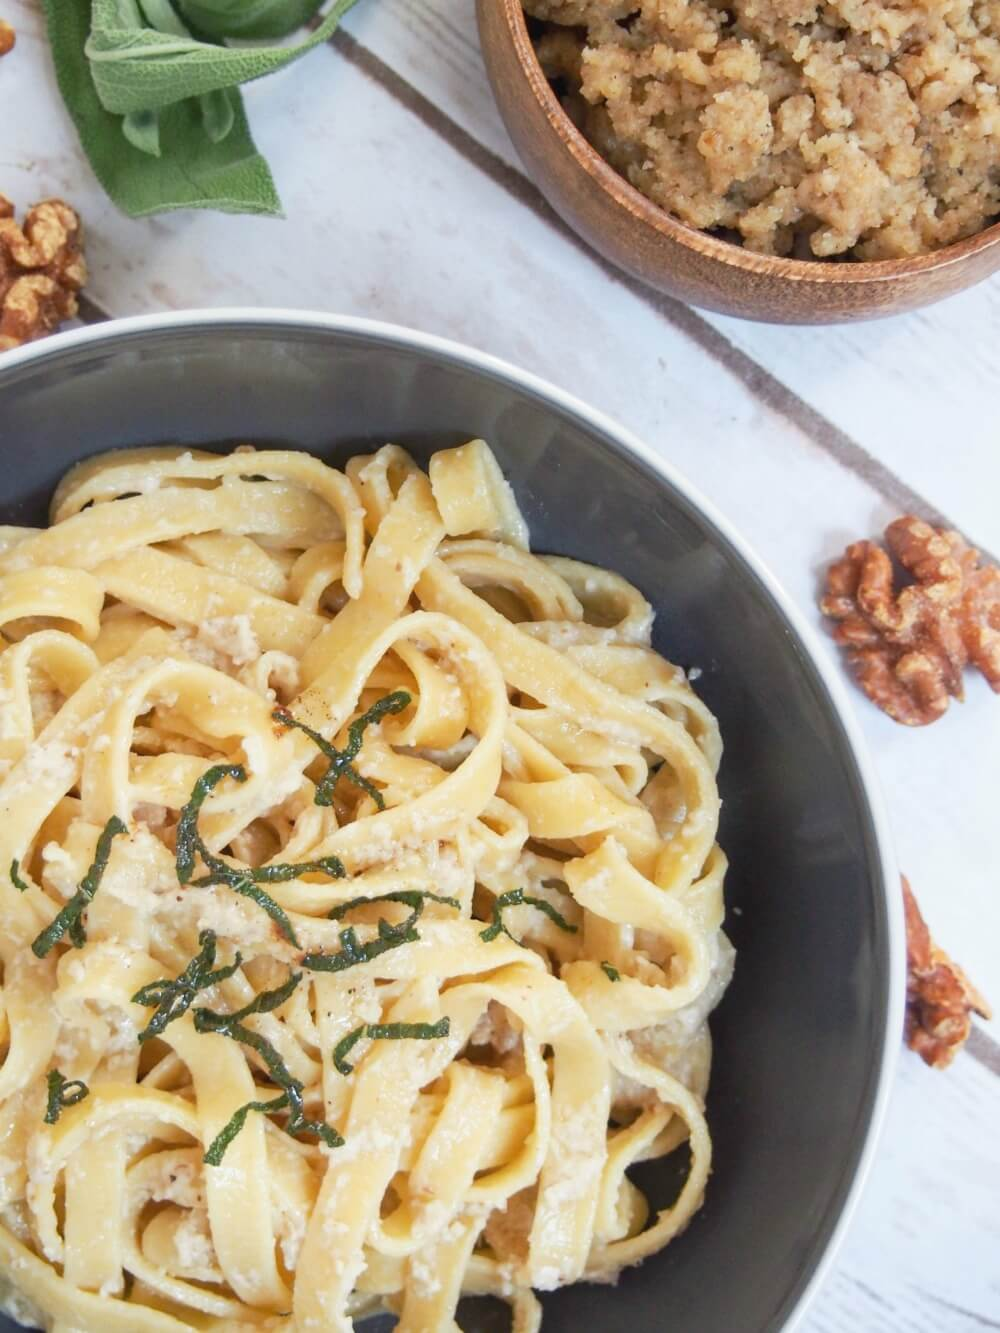 pumpkin pasta - homemade pasta with real pumpkin in the dough - here served with walnut sauce